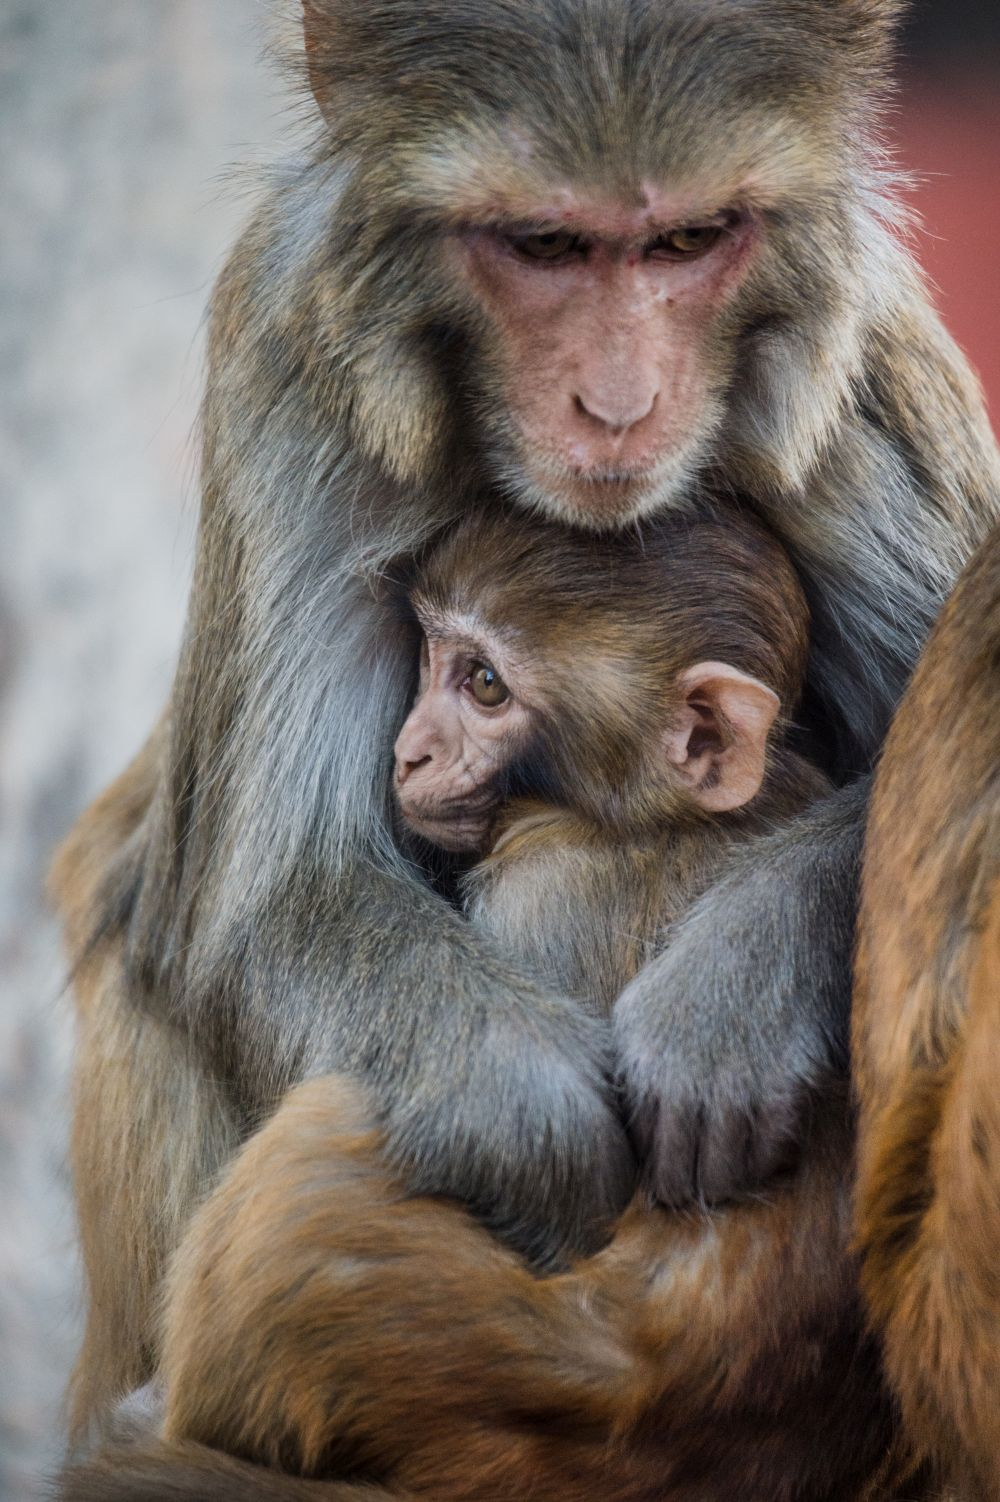 Mother rhesus macaque and baby, Swayambhunath Temple, Nepal; photo credit Jo-Anne McArthur / We Animals